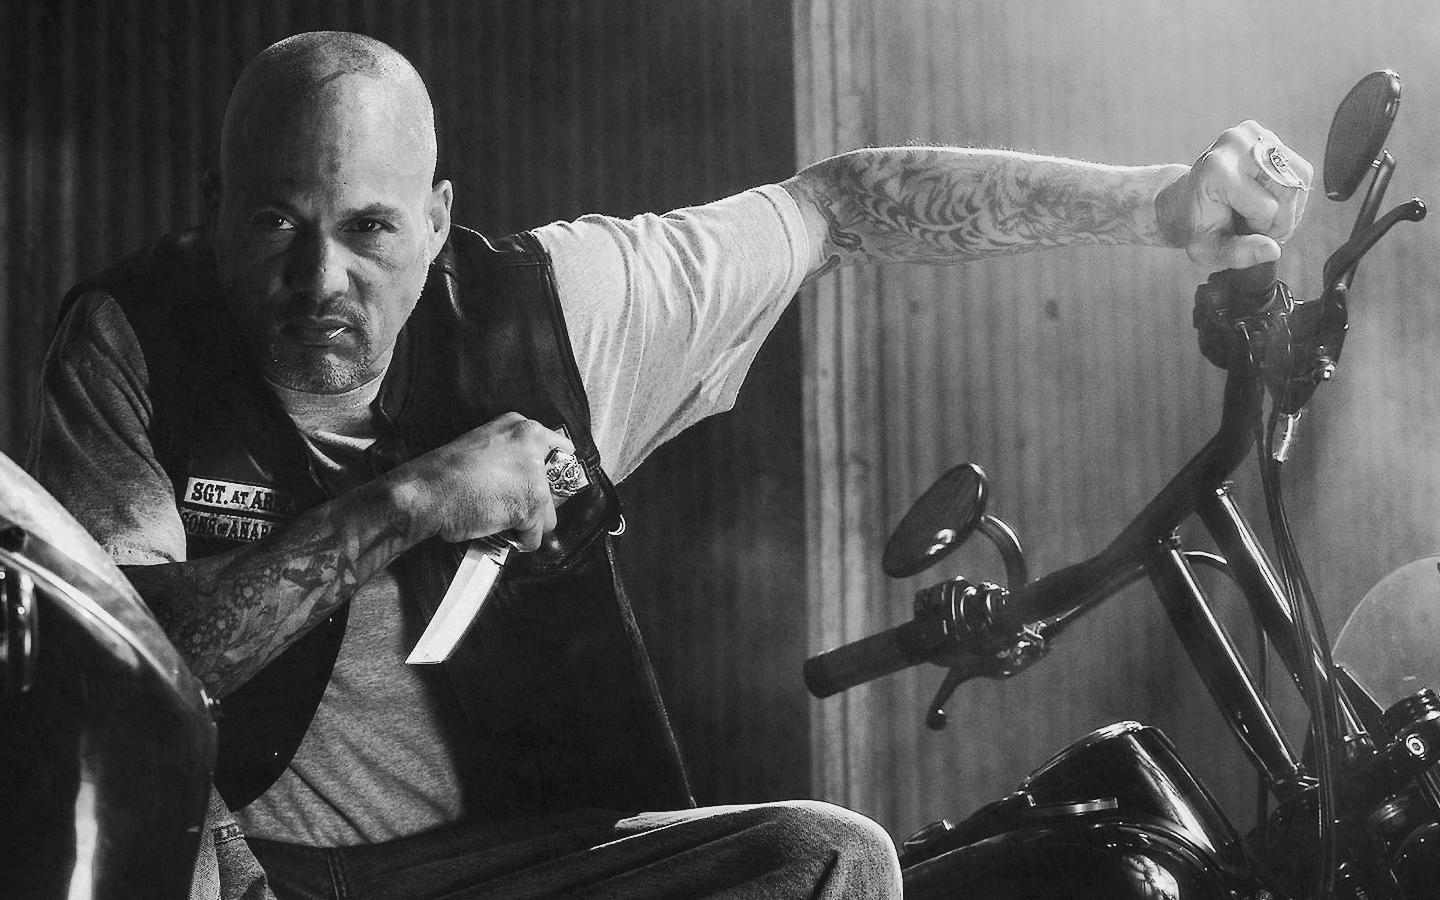 Free Download Soa Wallpaper Happy Sons Of Anarchy Wallpaper